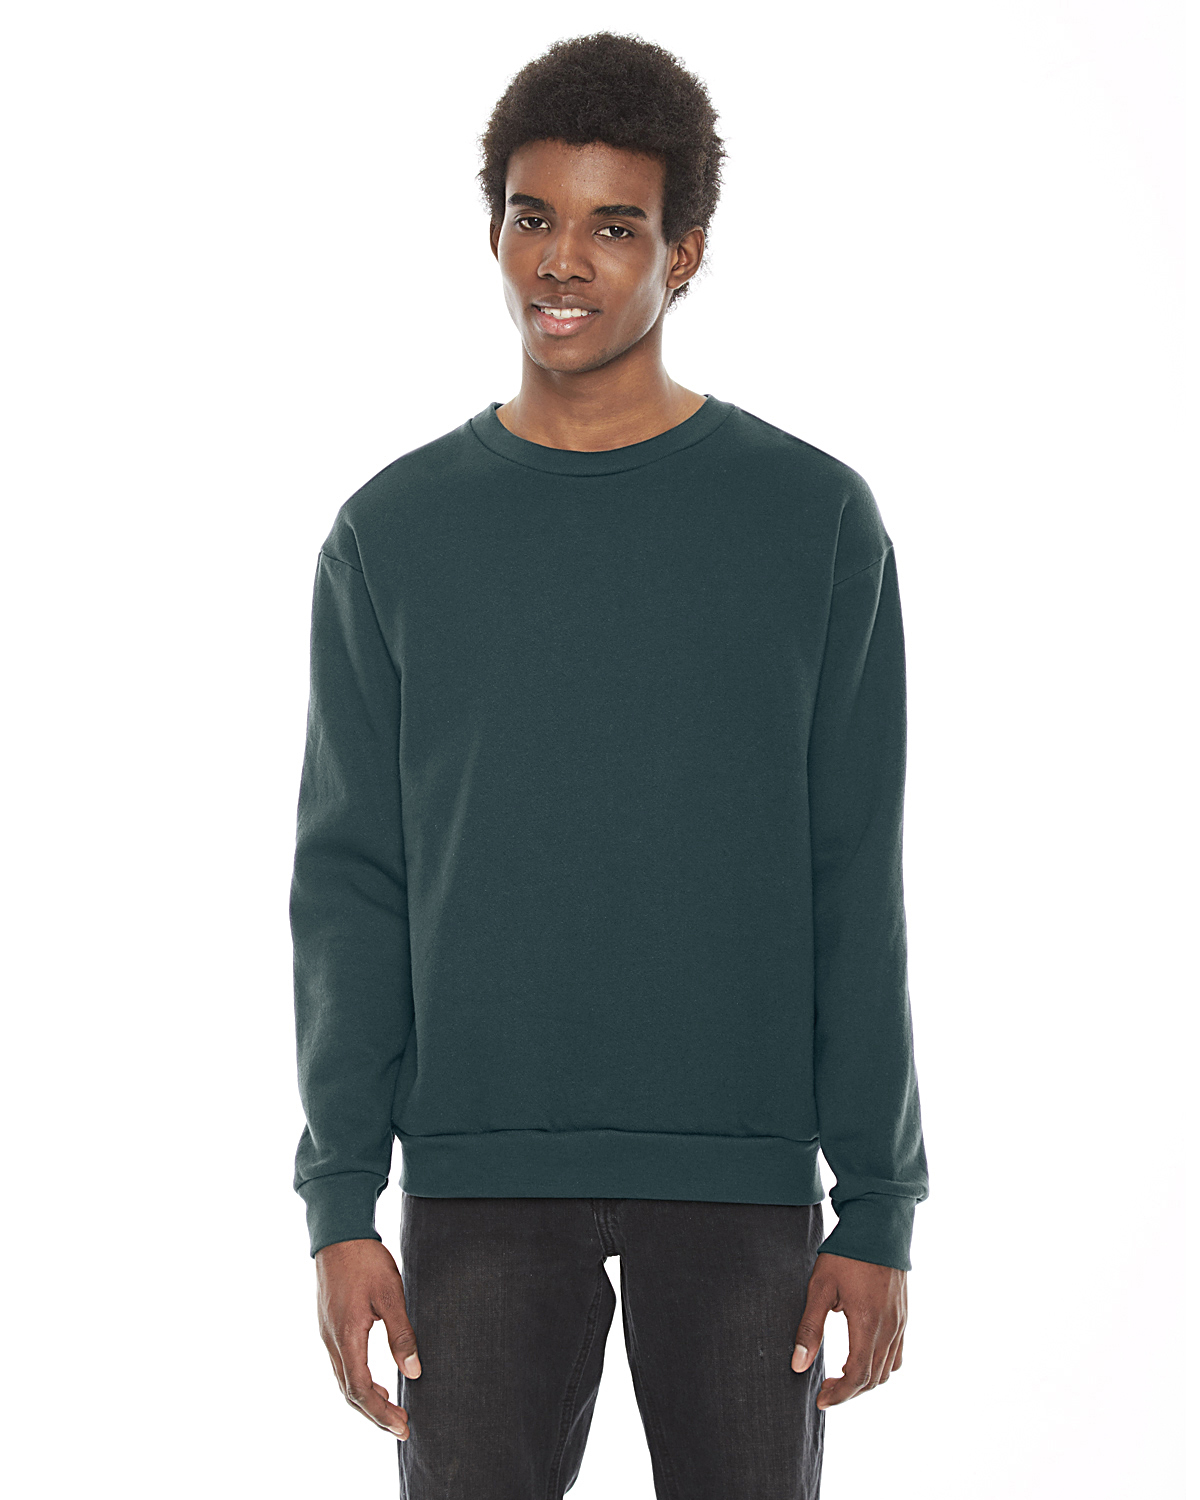 American Apparel Unisex Flex Fleece Drop Shoulder Pullover Crewn